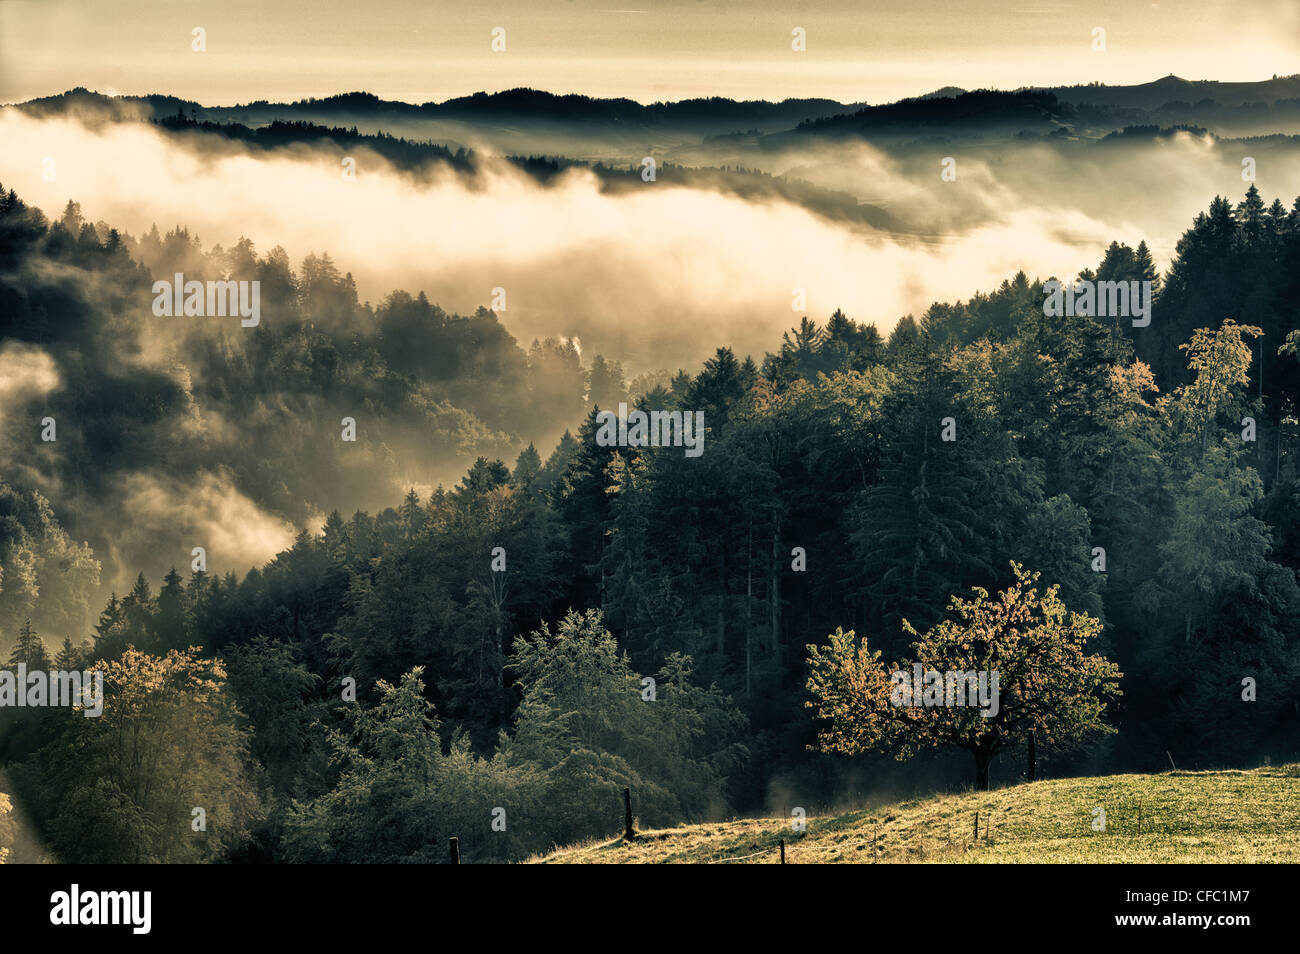 mountain forest, Emmental, autumn, fall, canton Bern, landscape, scenery, early morning fog, mist, fog patches, - Stock Image